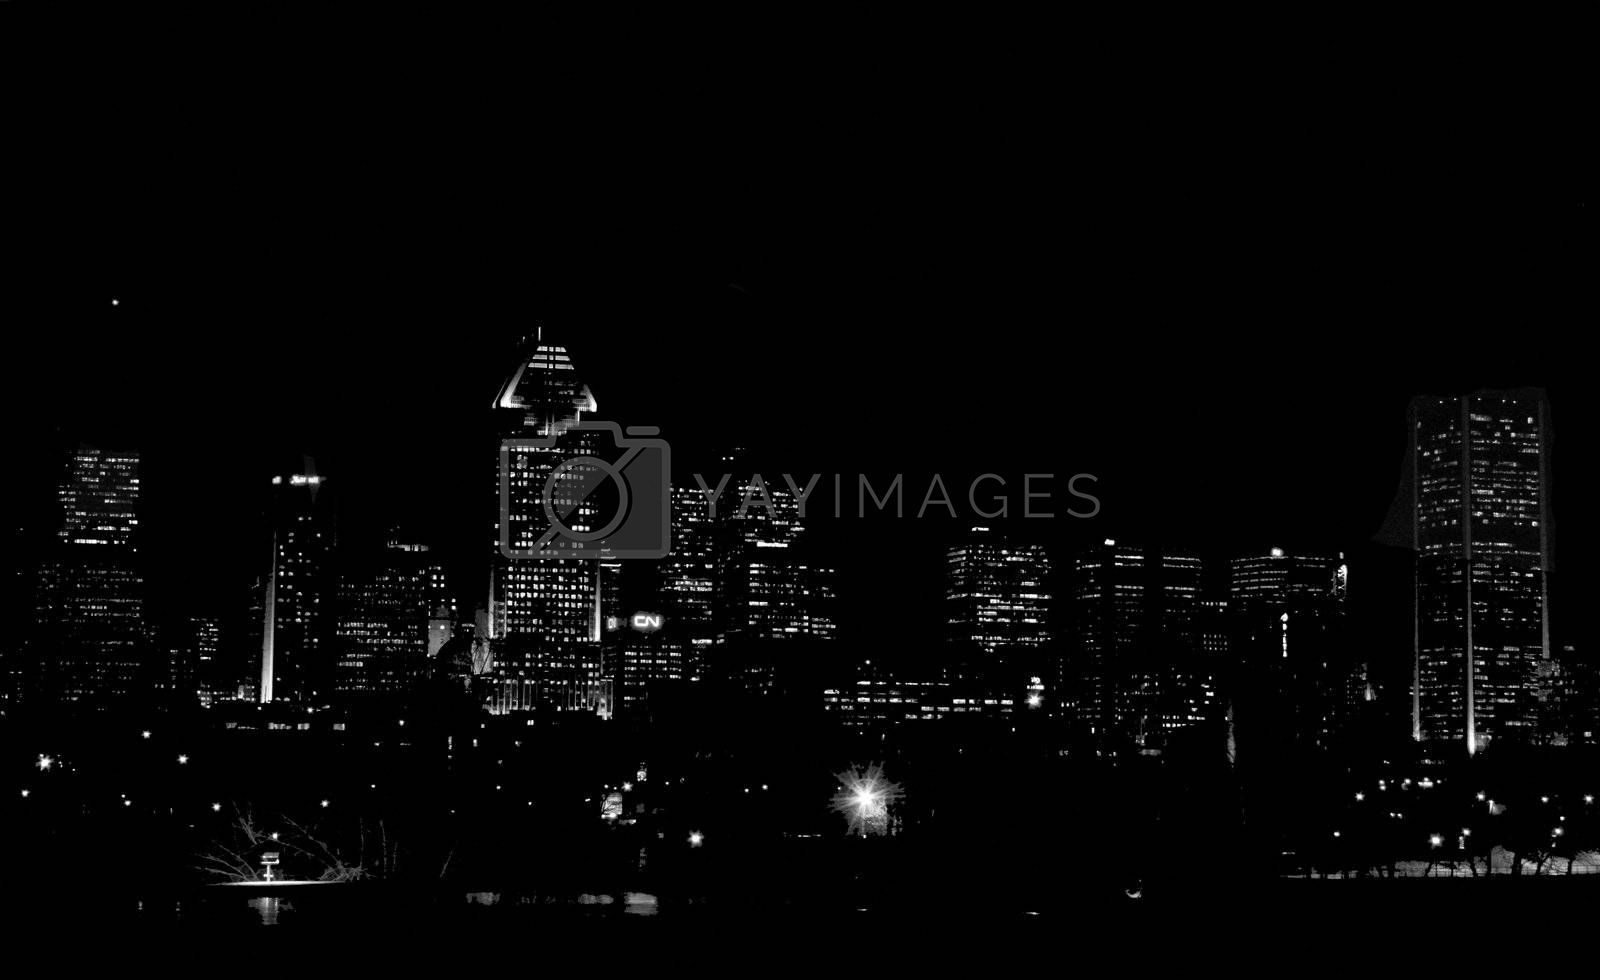 End of night silhouette view of Montreal cityscape